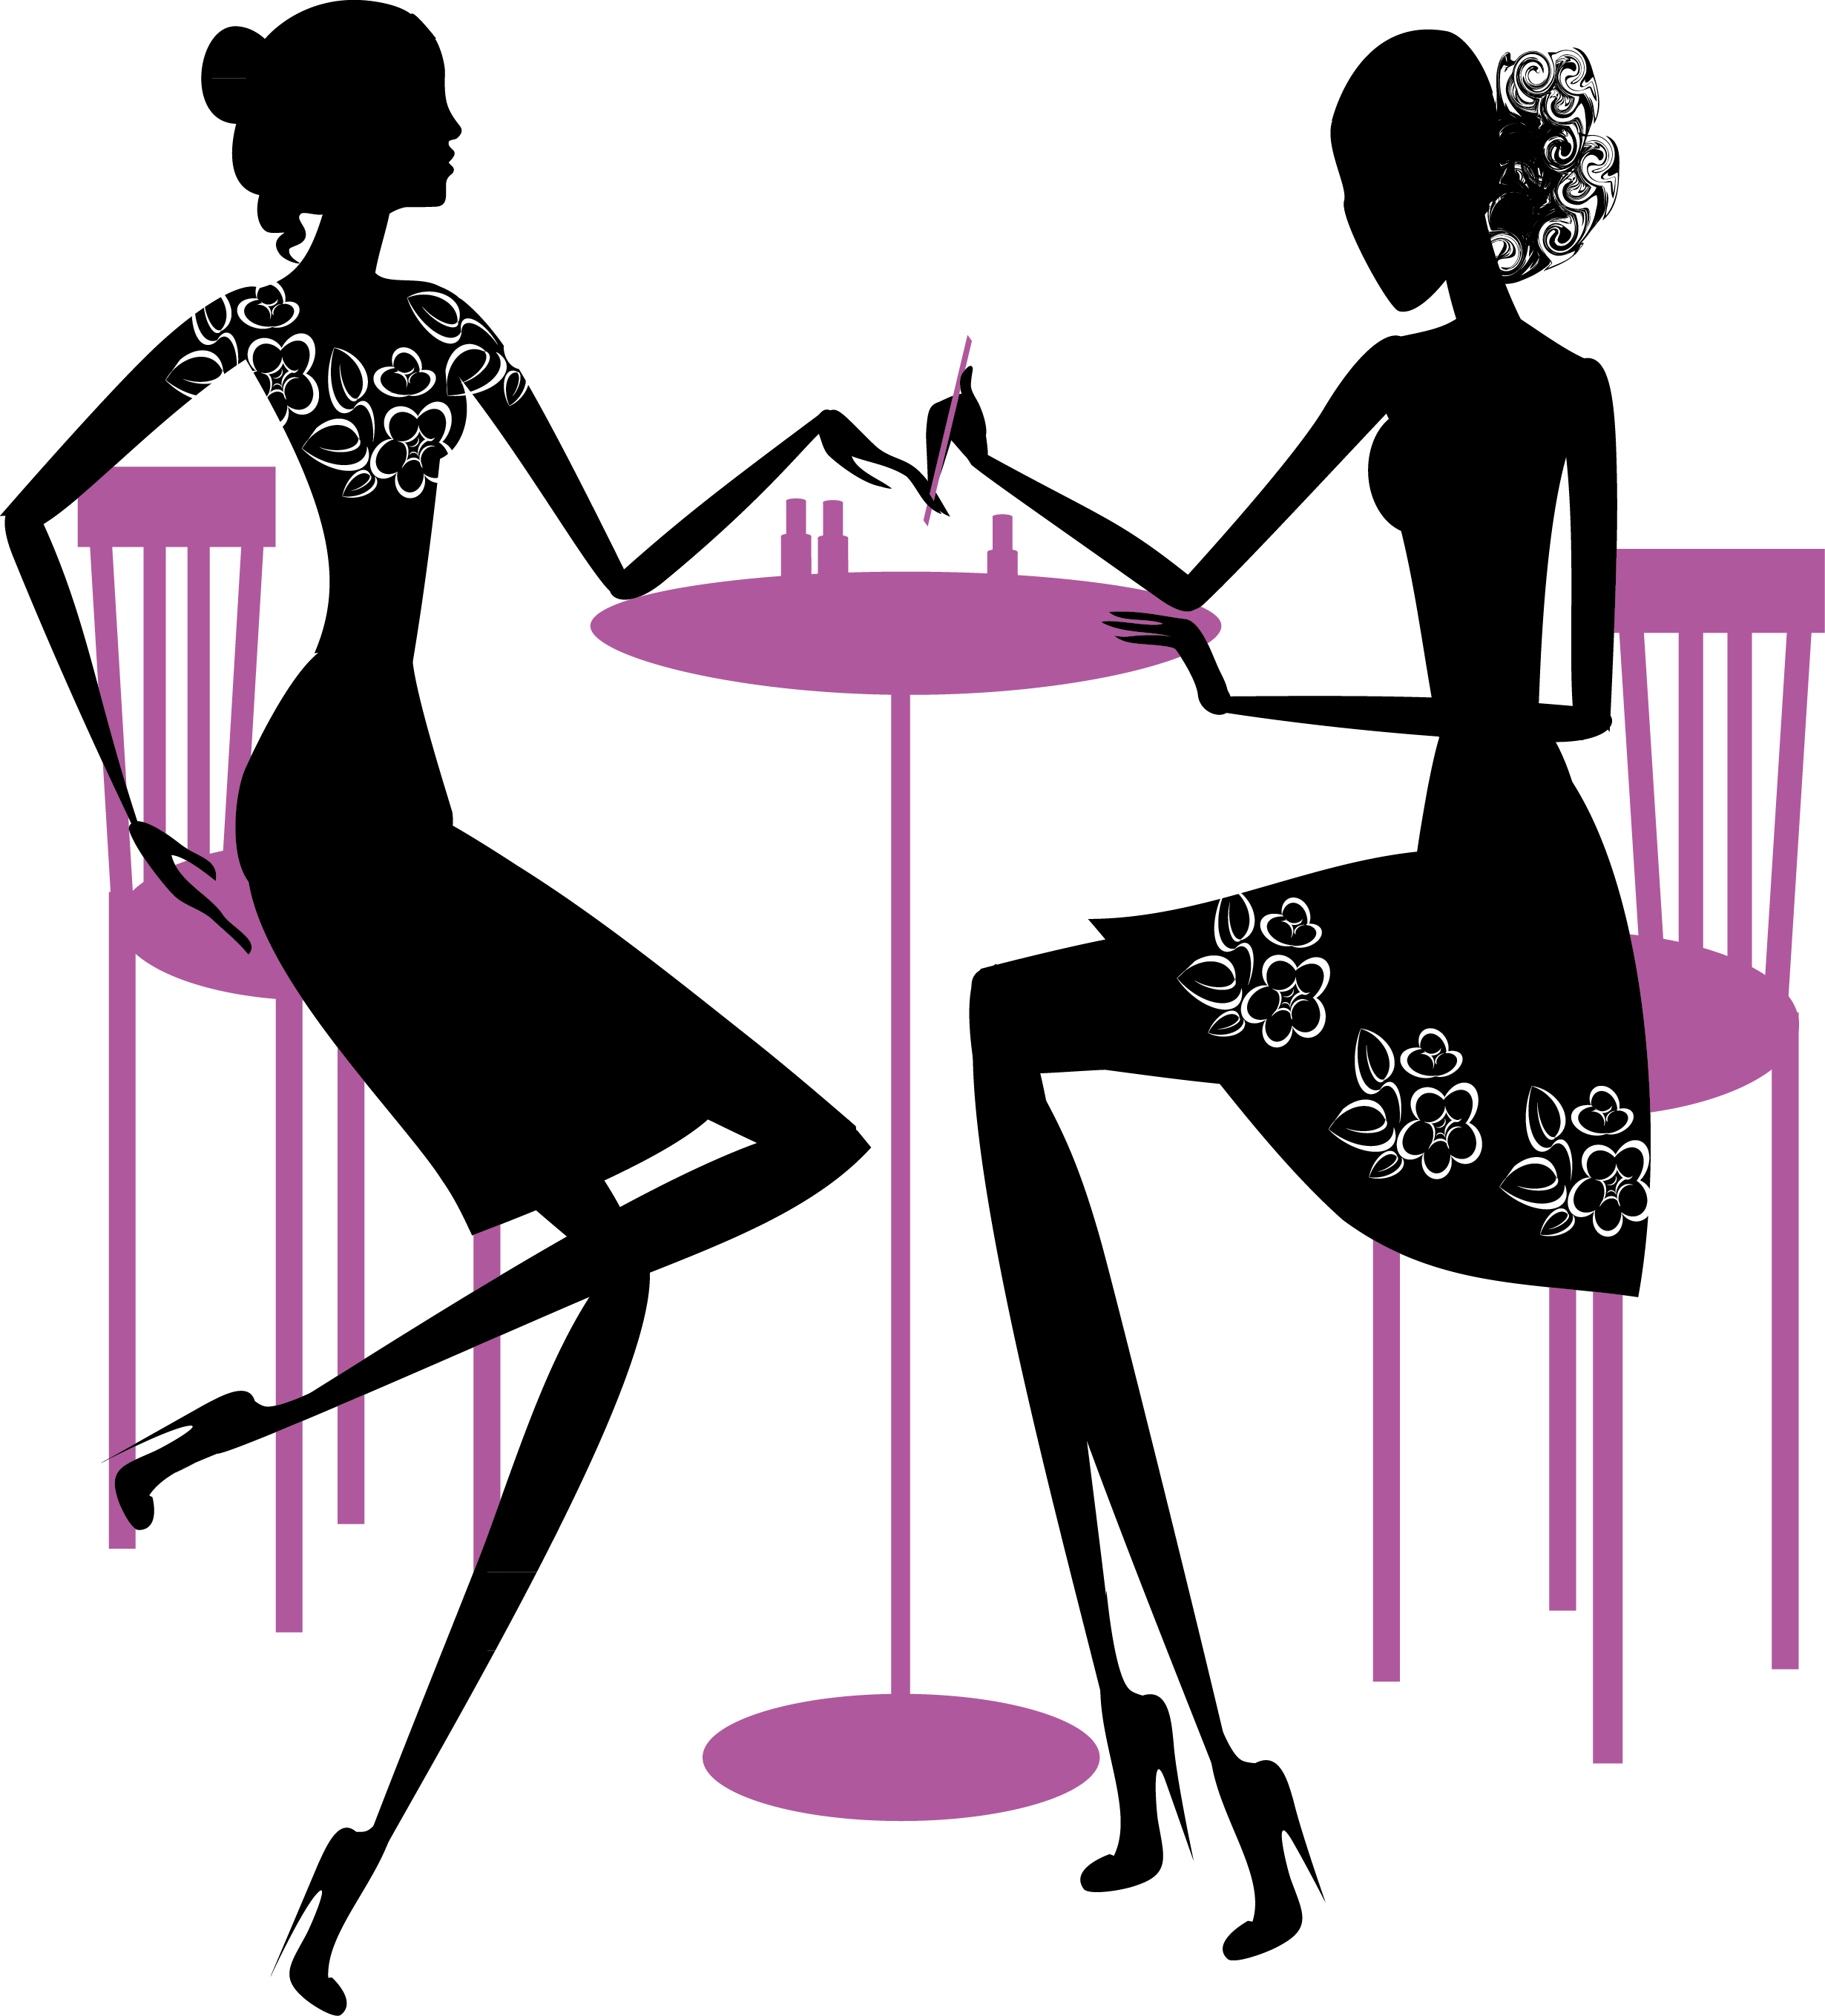 picture download Nail salon beauty parlour. Manicure clipart restaurant menu.